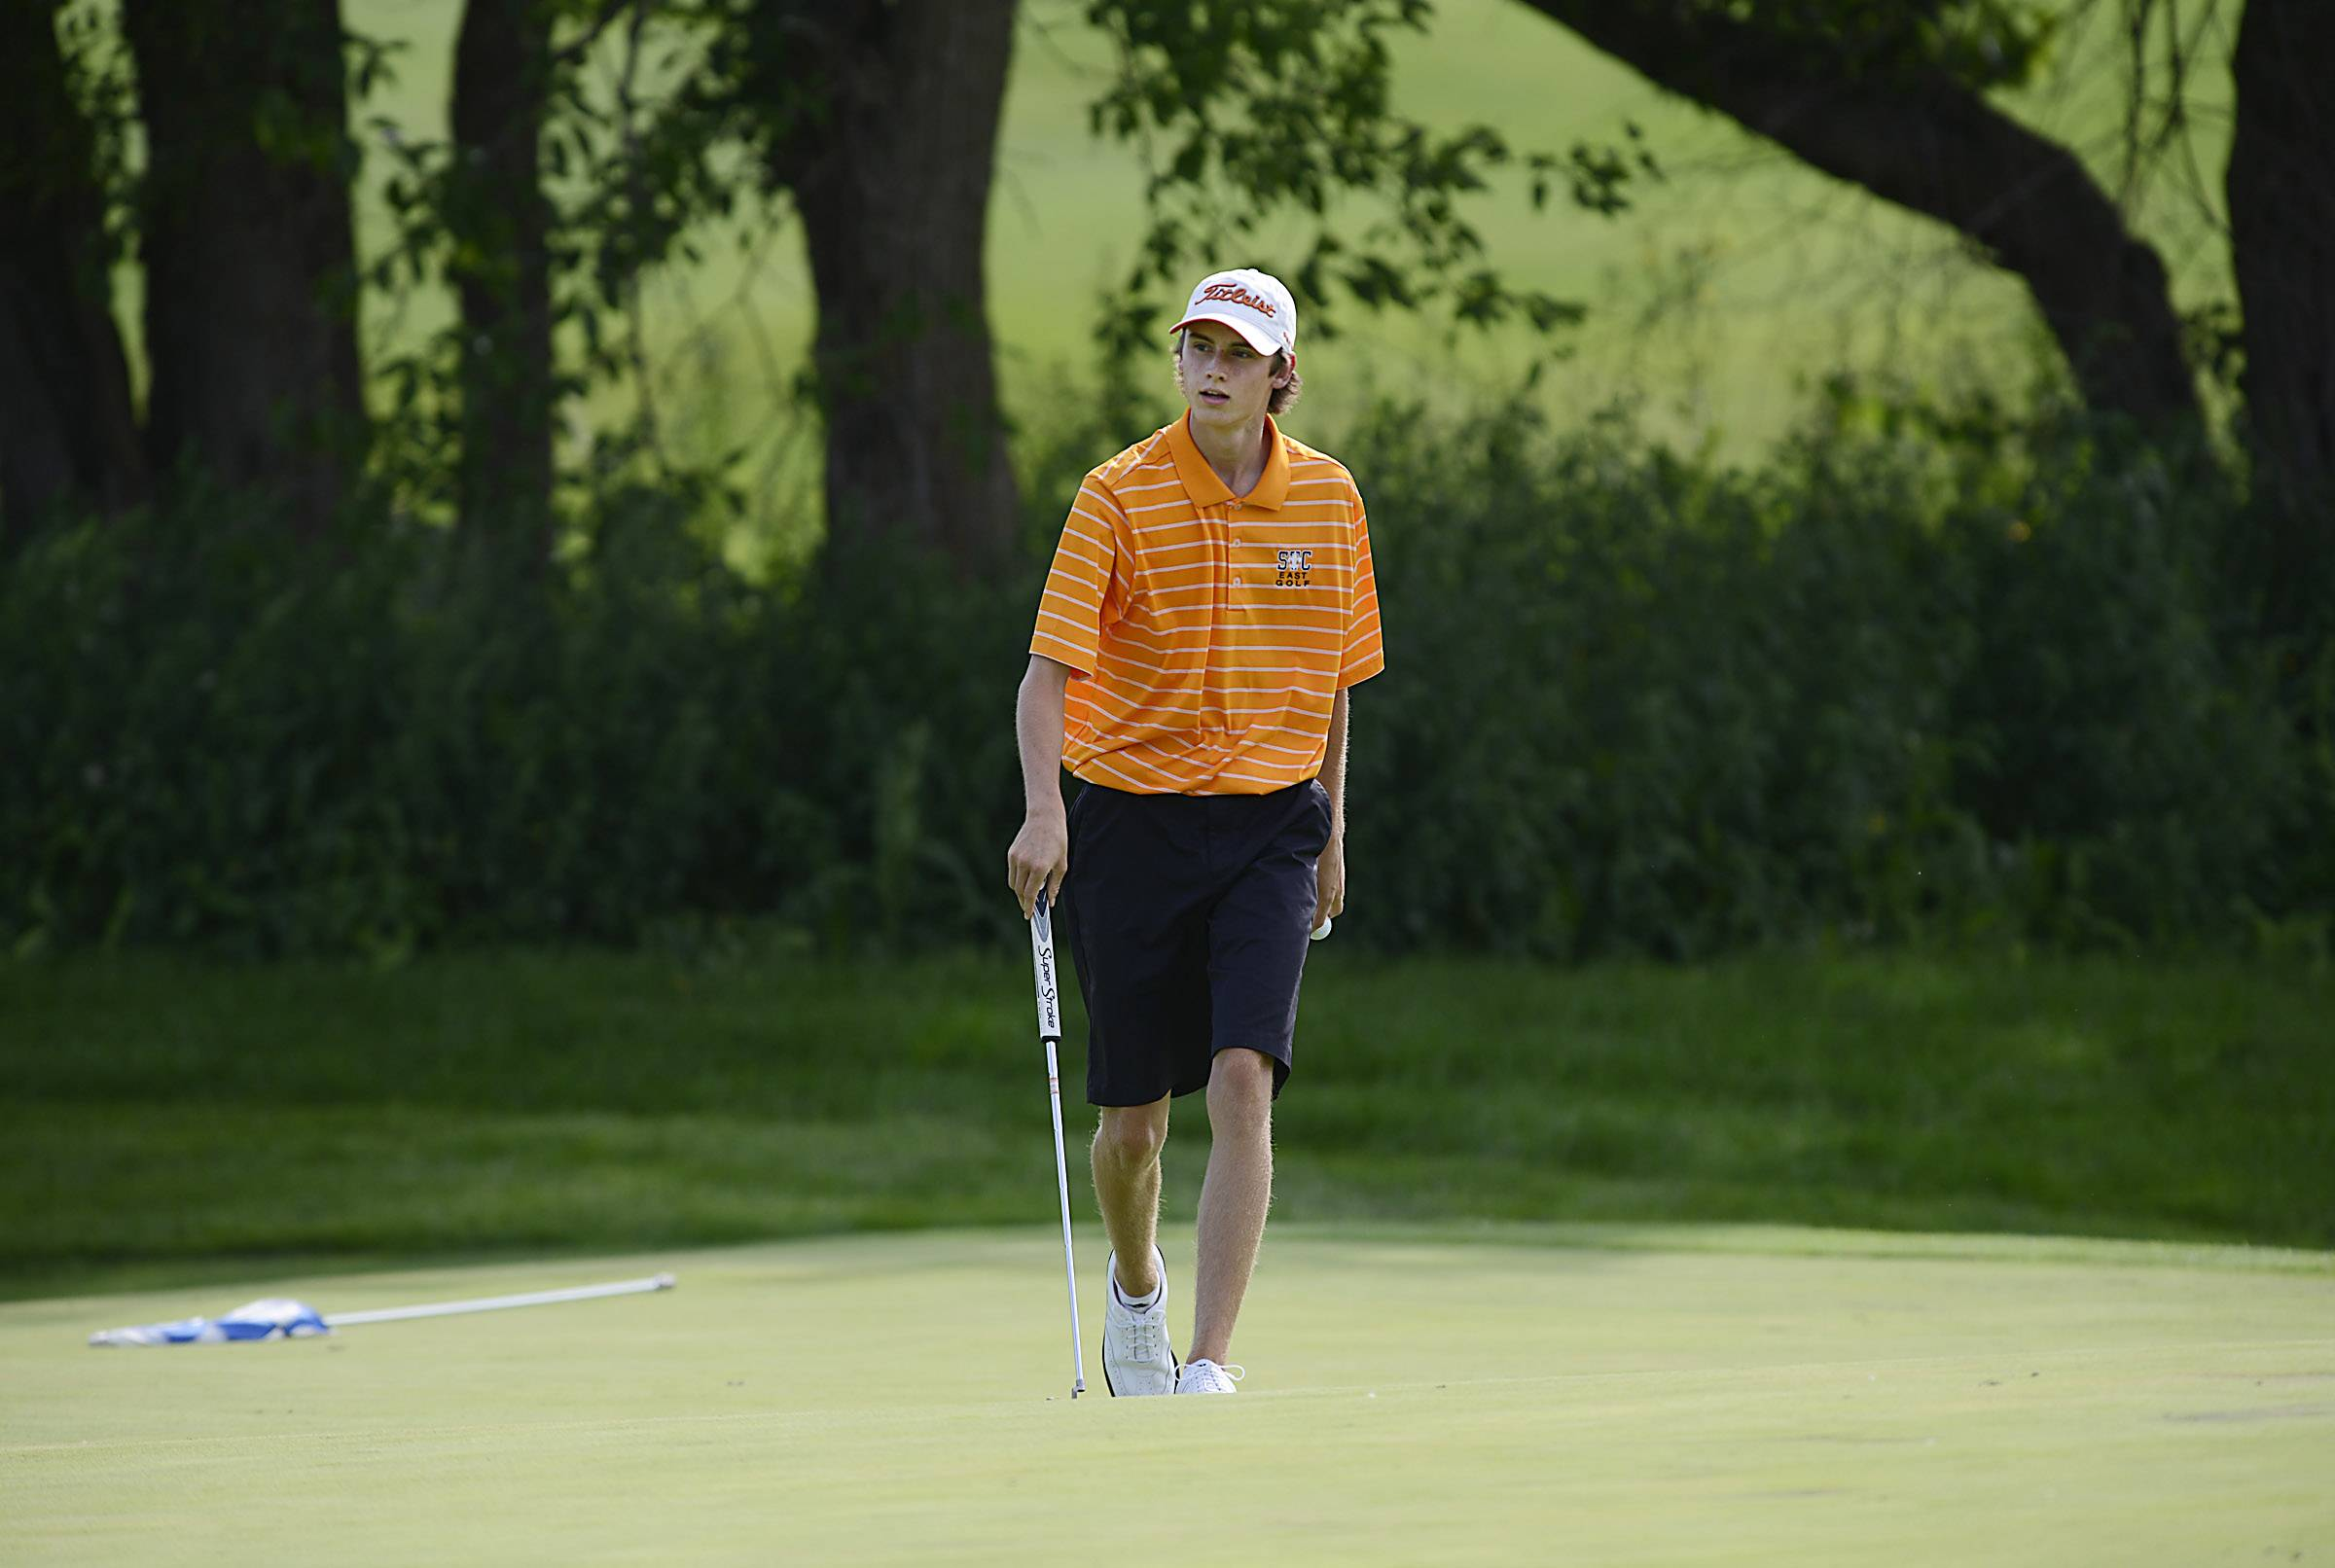 St. Charles East's Gary King won the individual title and his Saints squad claimed the team championship Thursday at the Geneva boys golf invitational at Mill Creek Golf Club.